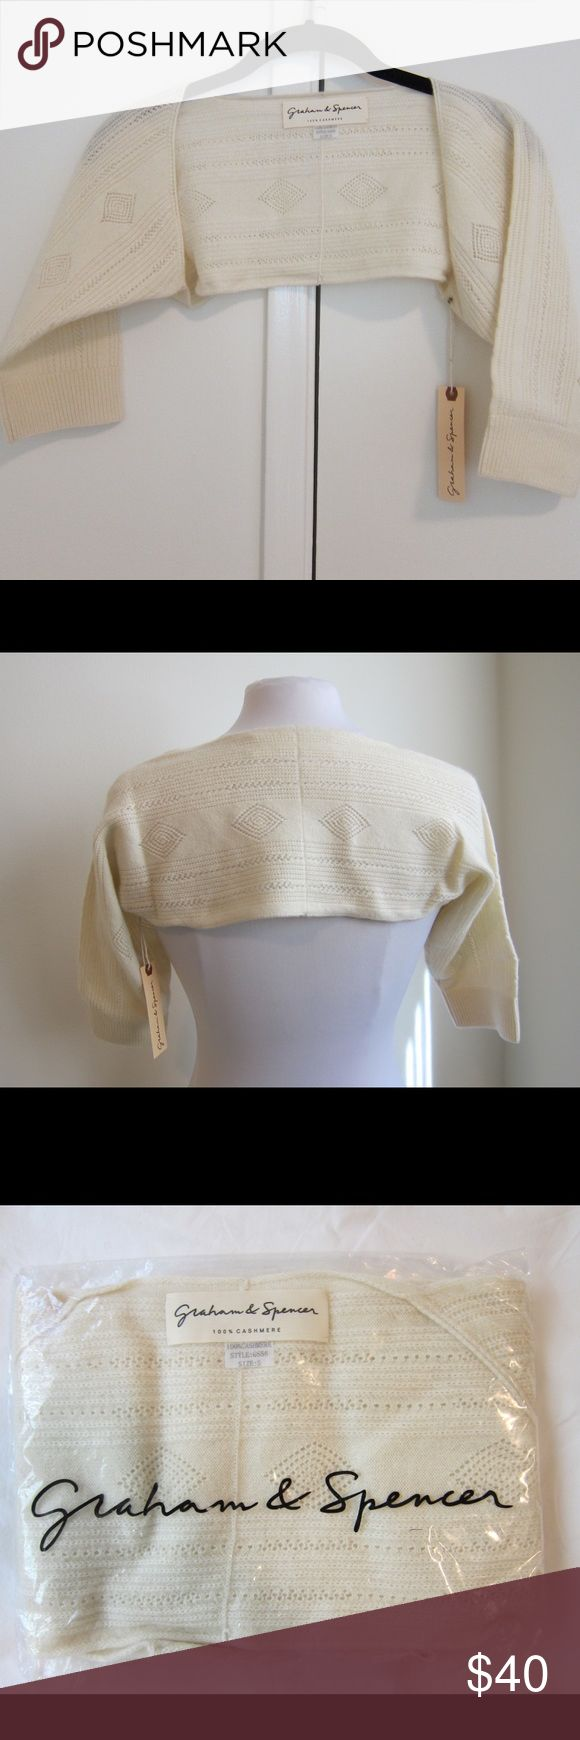 NWT Graham & Spencer Cashmere sweater shrug NWT Graham & Spencer Super cute Cashmere Cream sweater shrug. In original package - only removed for photos.  Pet free/smoke free home. Graham & Spencer Sweaters Shrugs & Ponchos